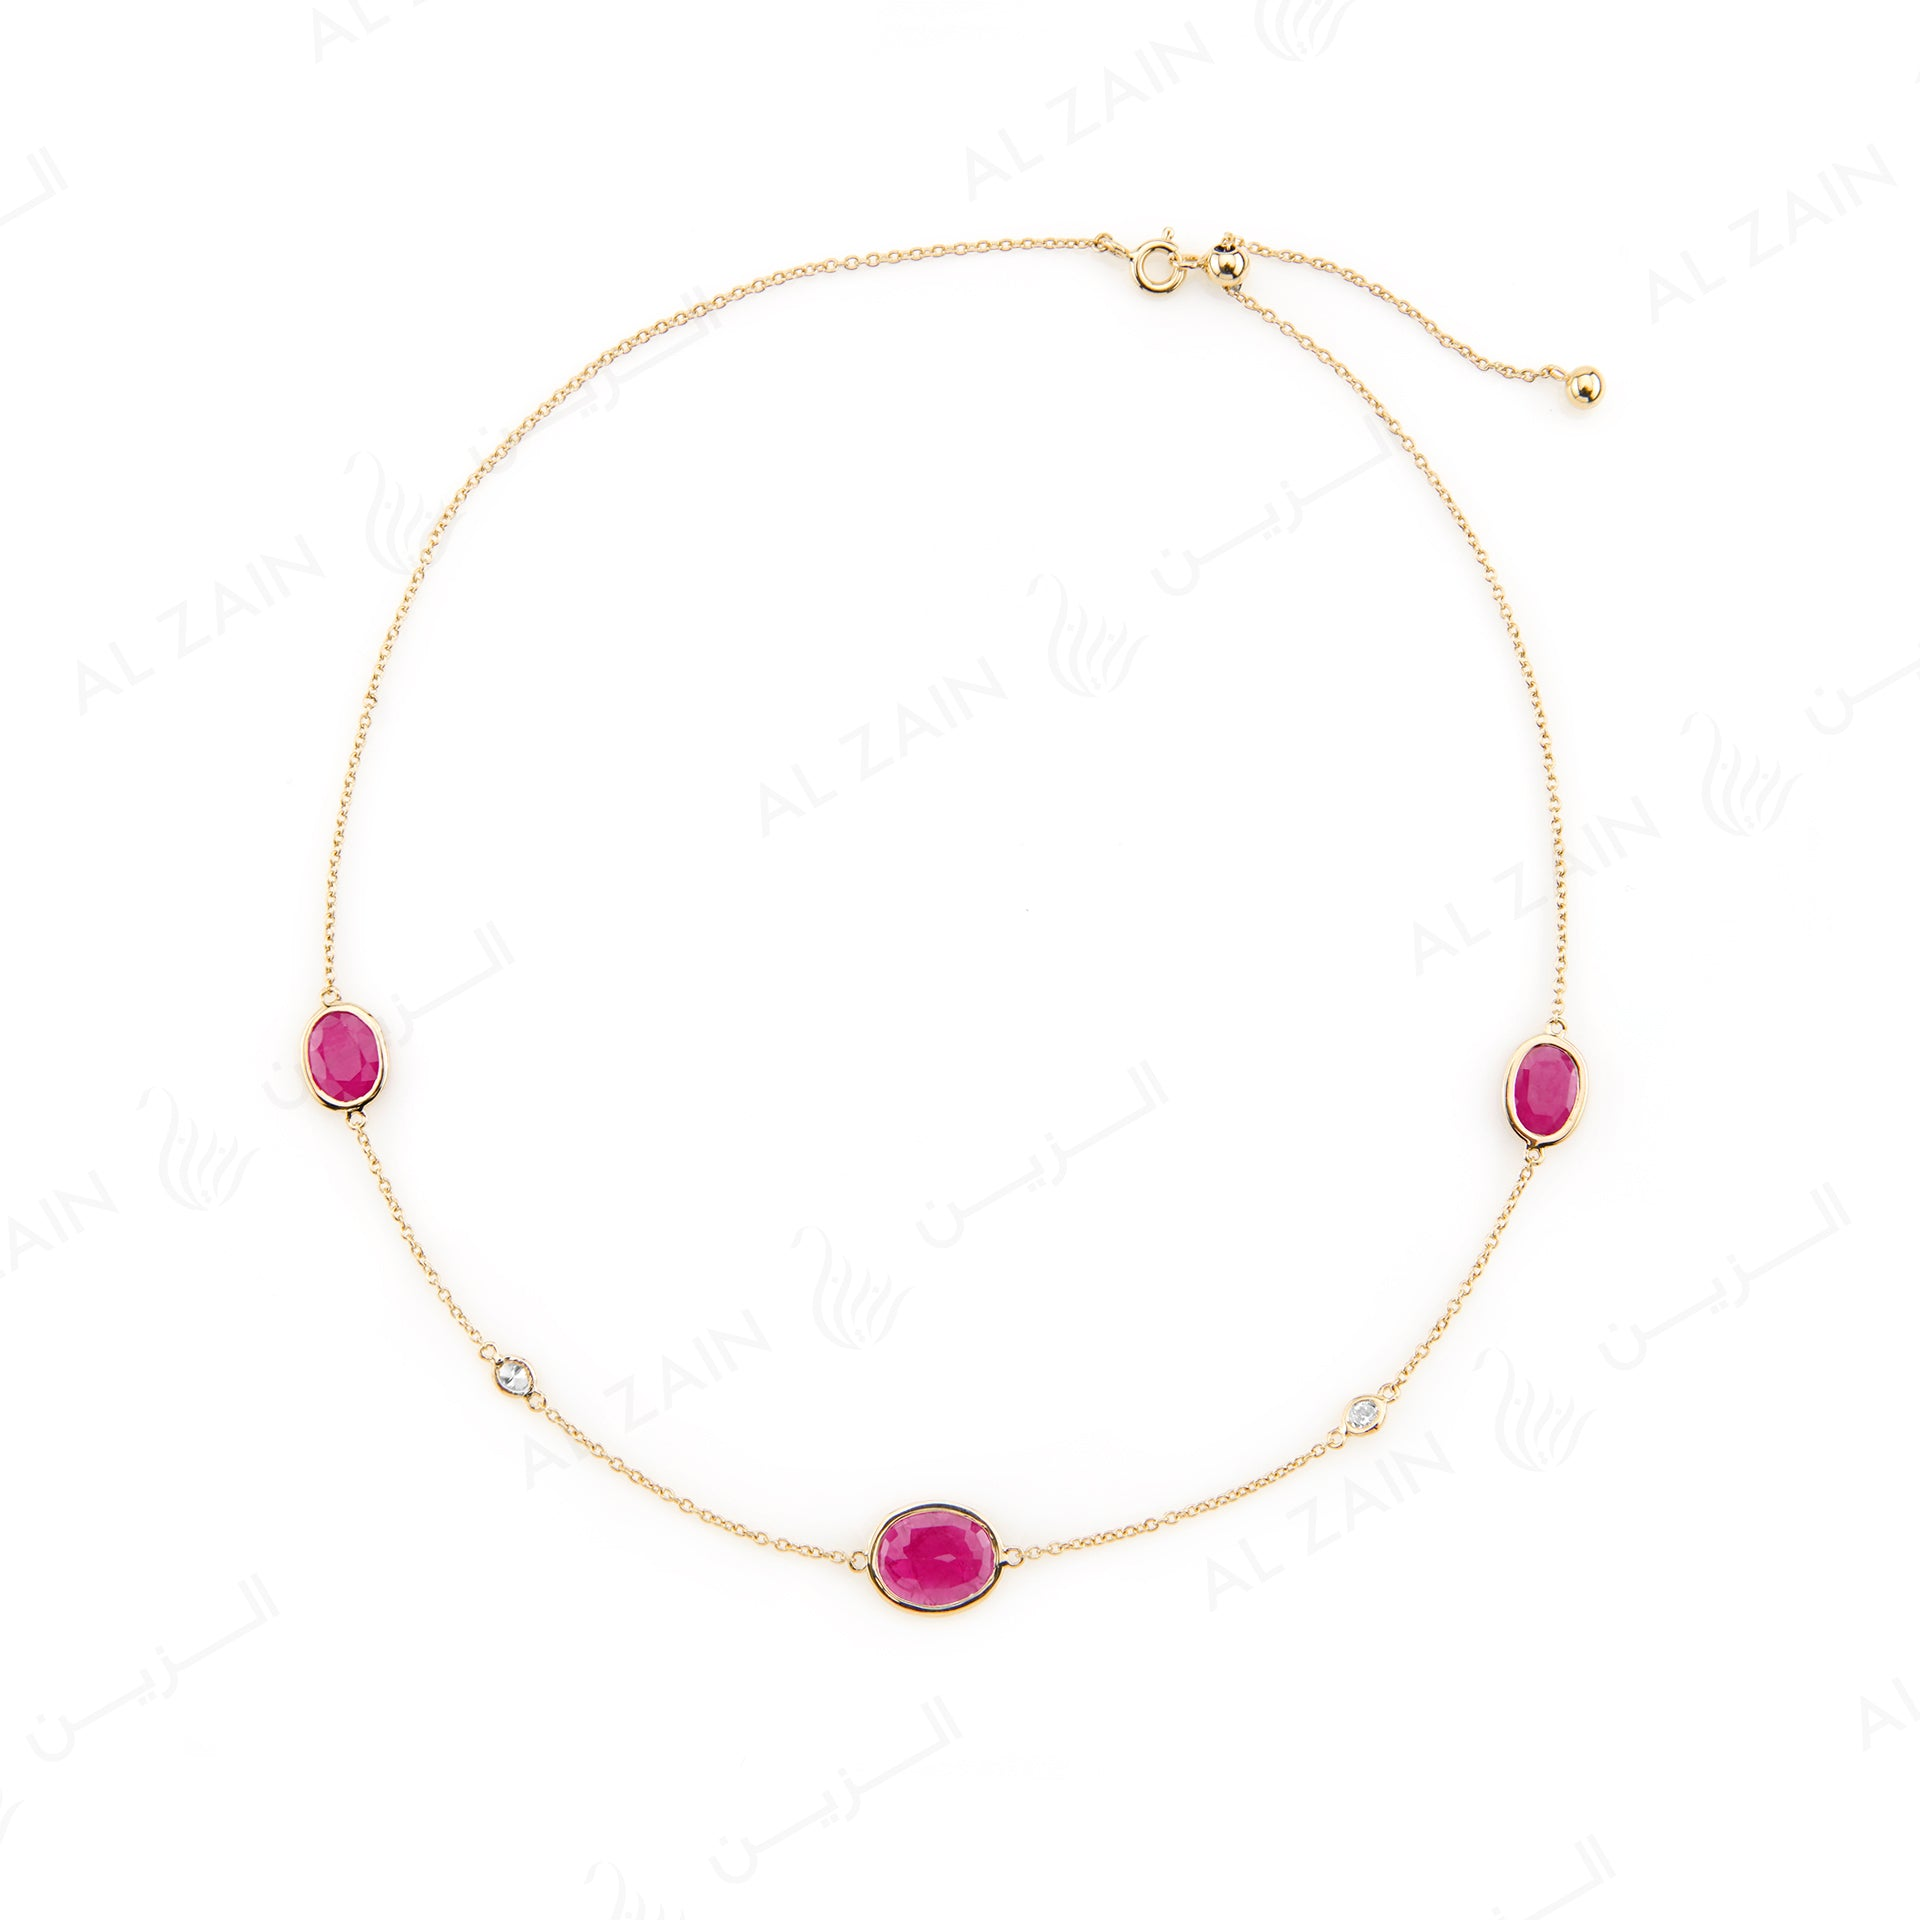 Nina Necklace in Yellow Gold with Ruby Stone - Al Zain Jewellery